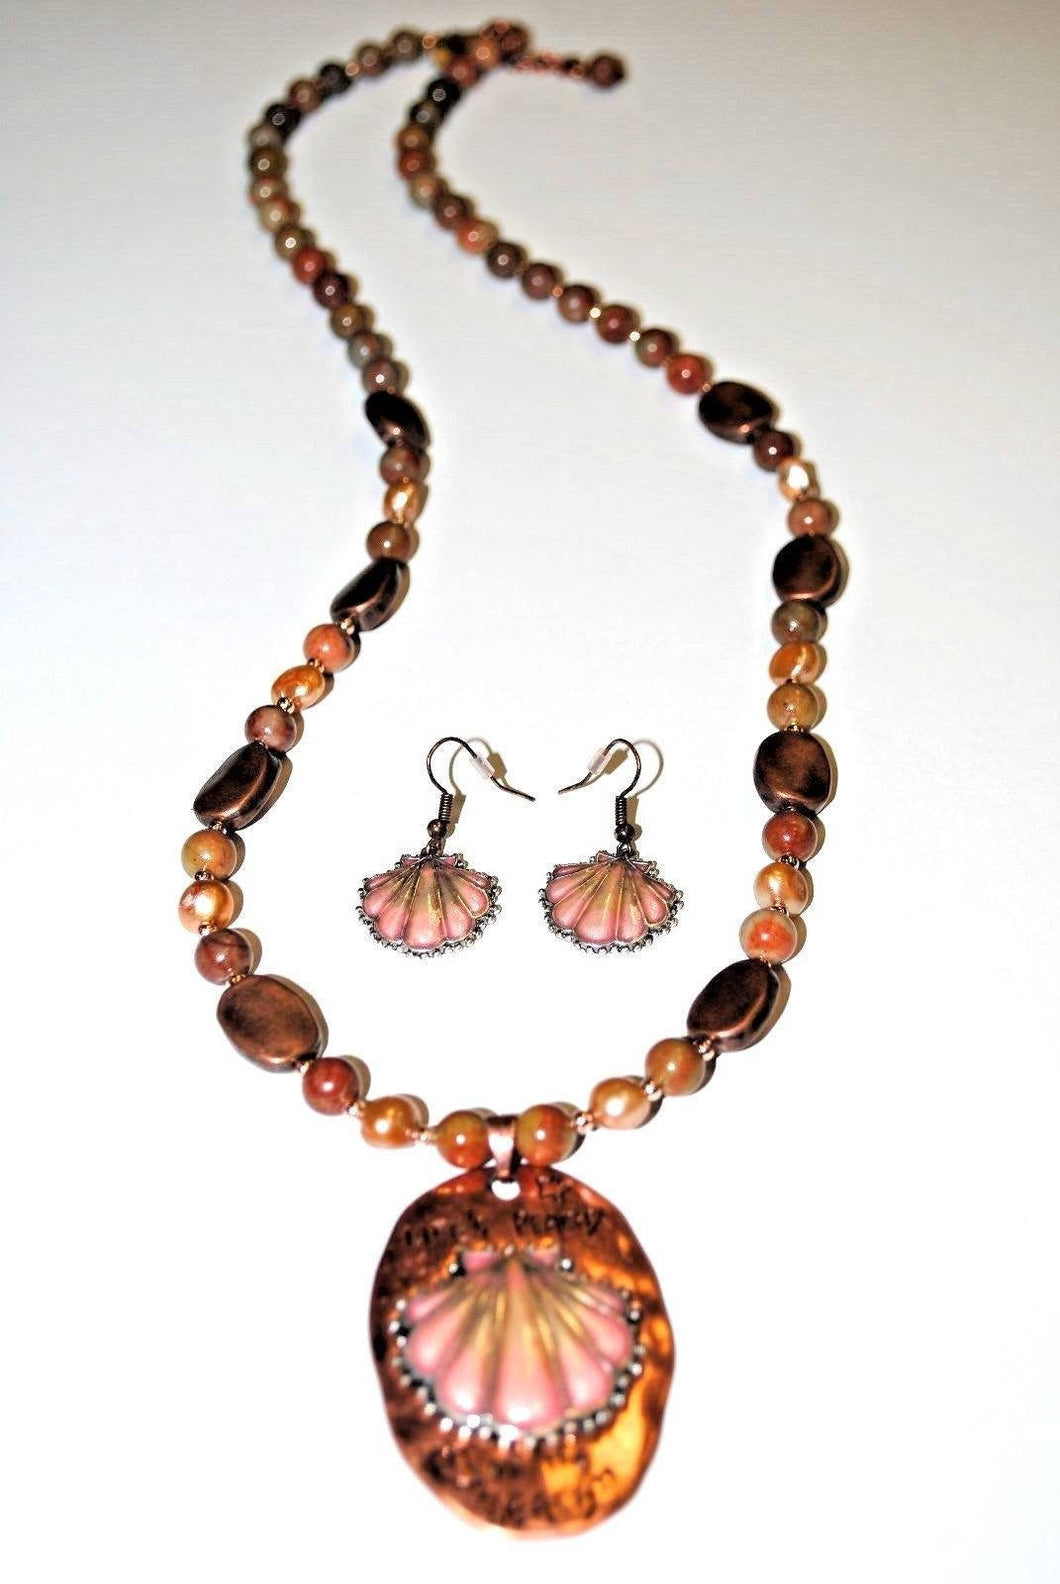 Long Autumn Jasper,Peach Freshwater Pearls and Copper Beads Necklace set.